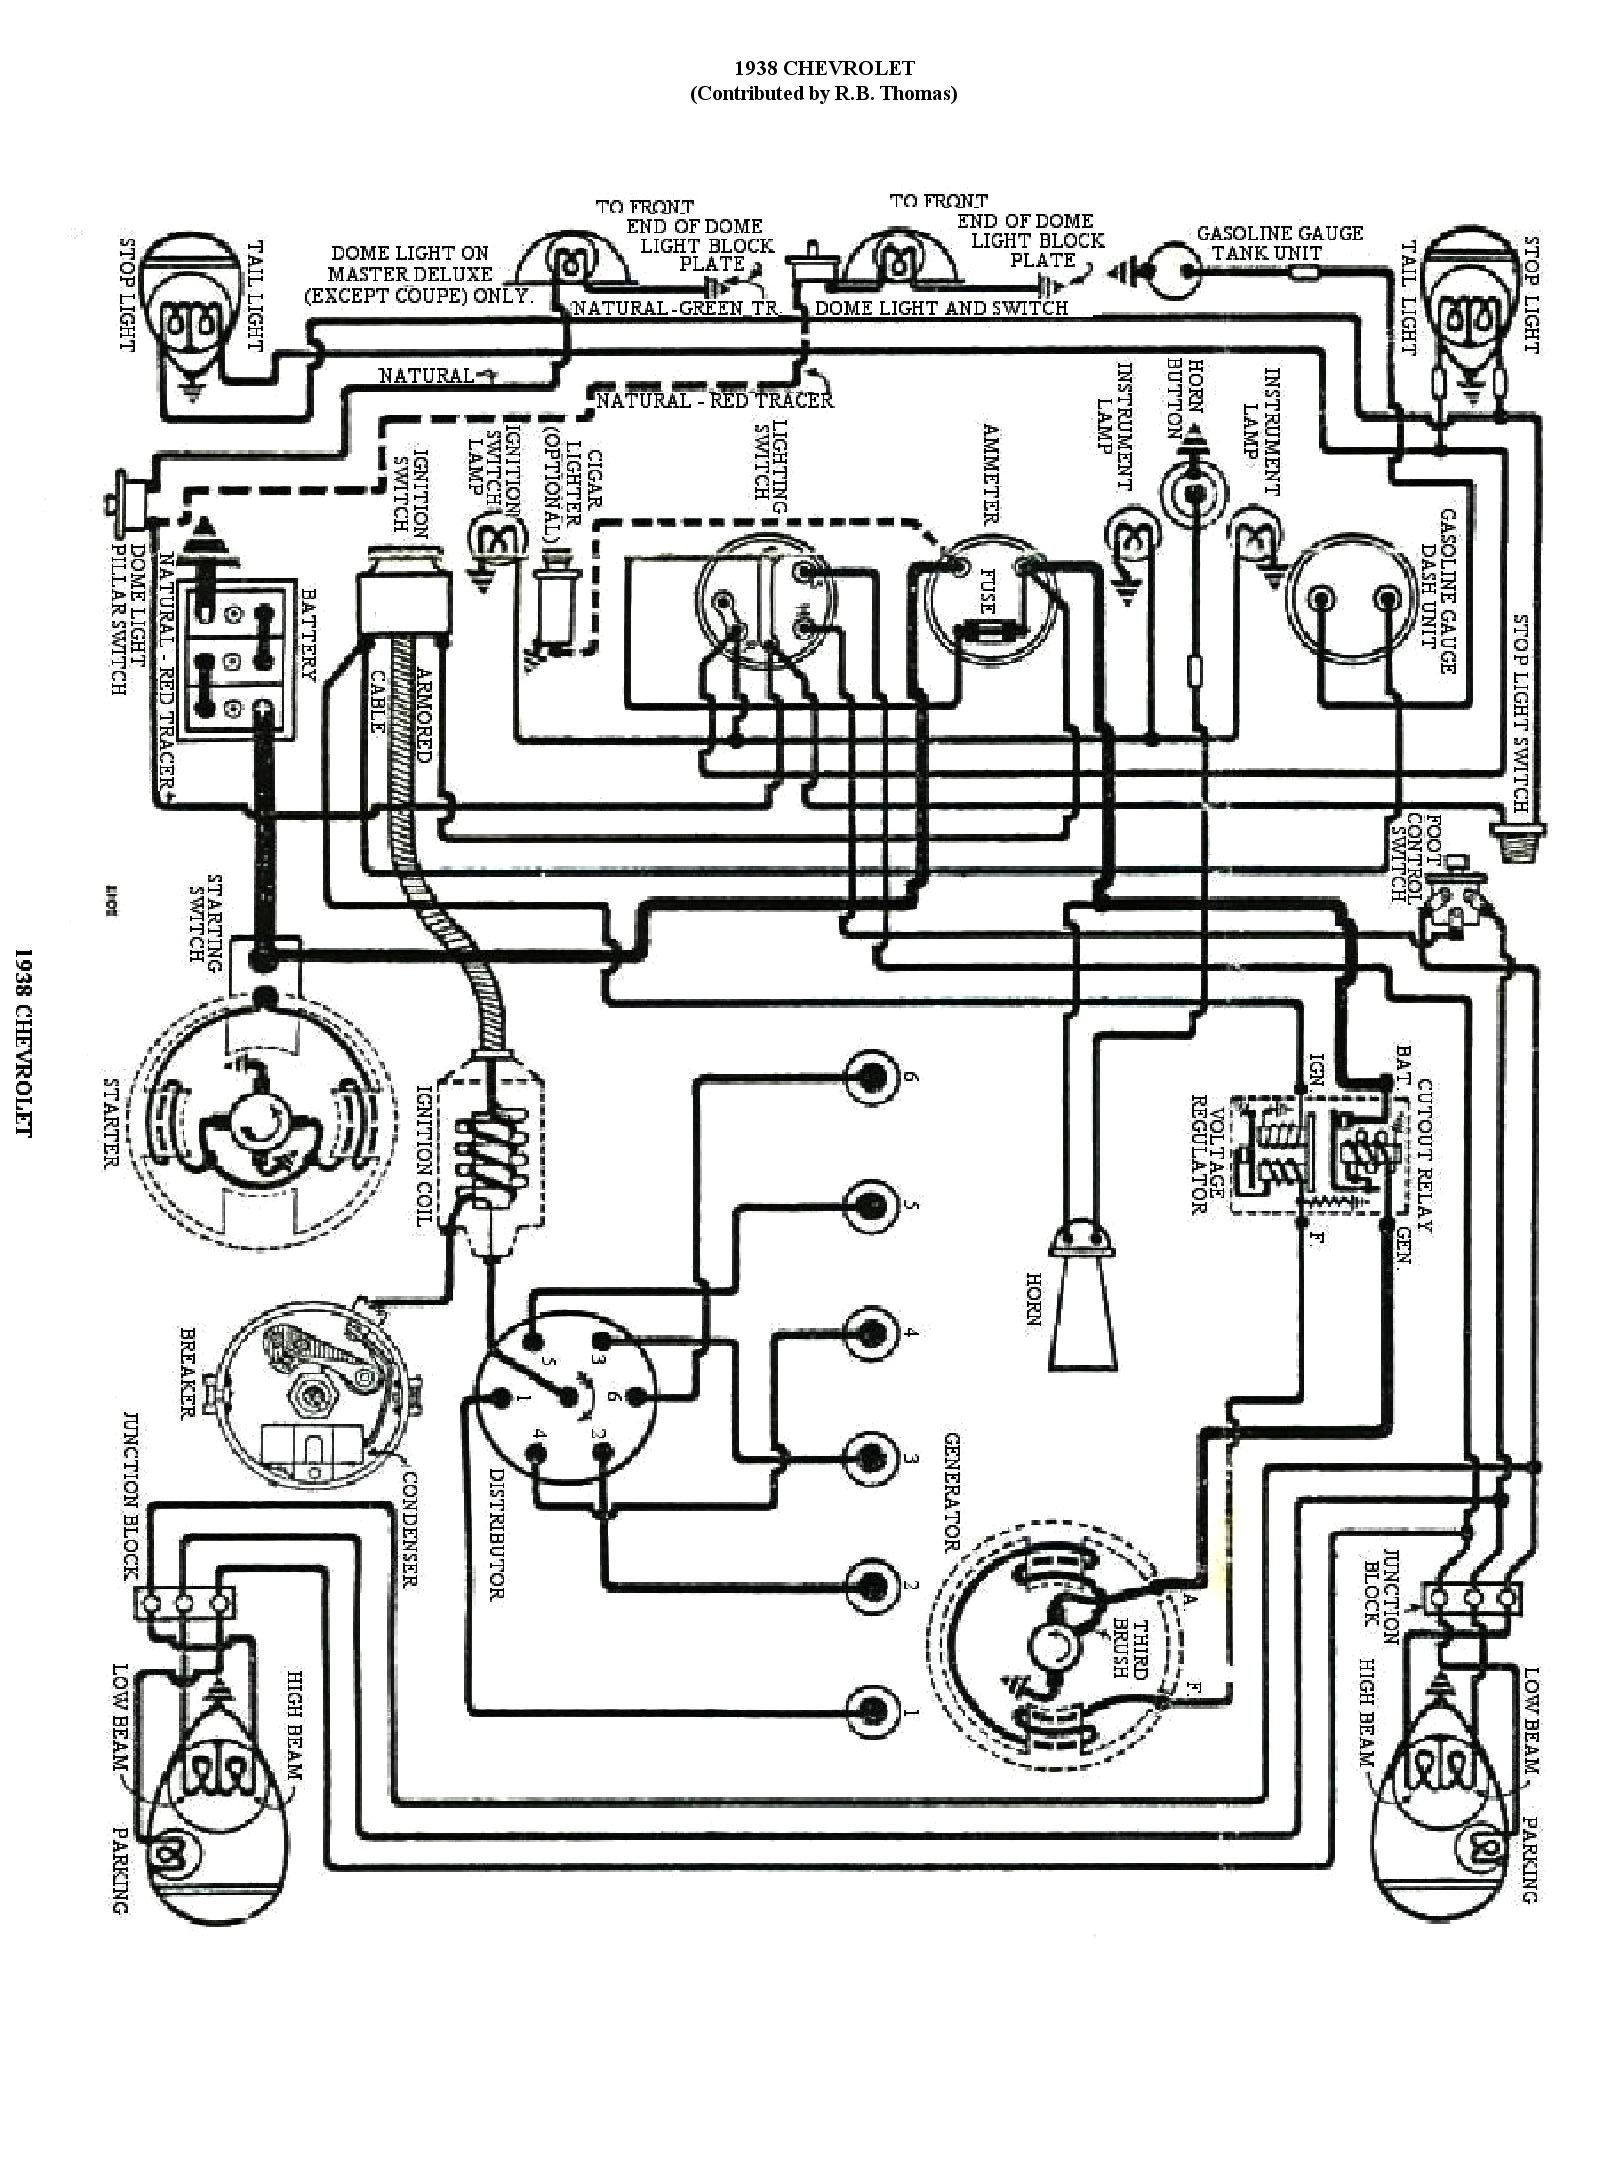 38wiring dodge wiring diagrams free 1997 dodge caravan wiring diagram free pontiac wiring diagrams at suagrazia.org